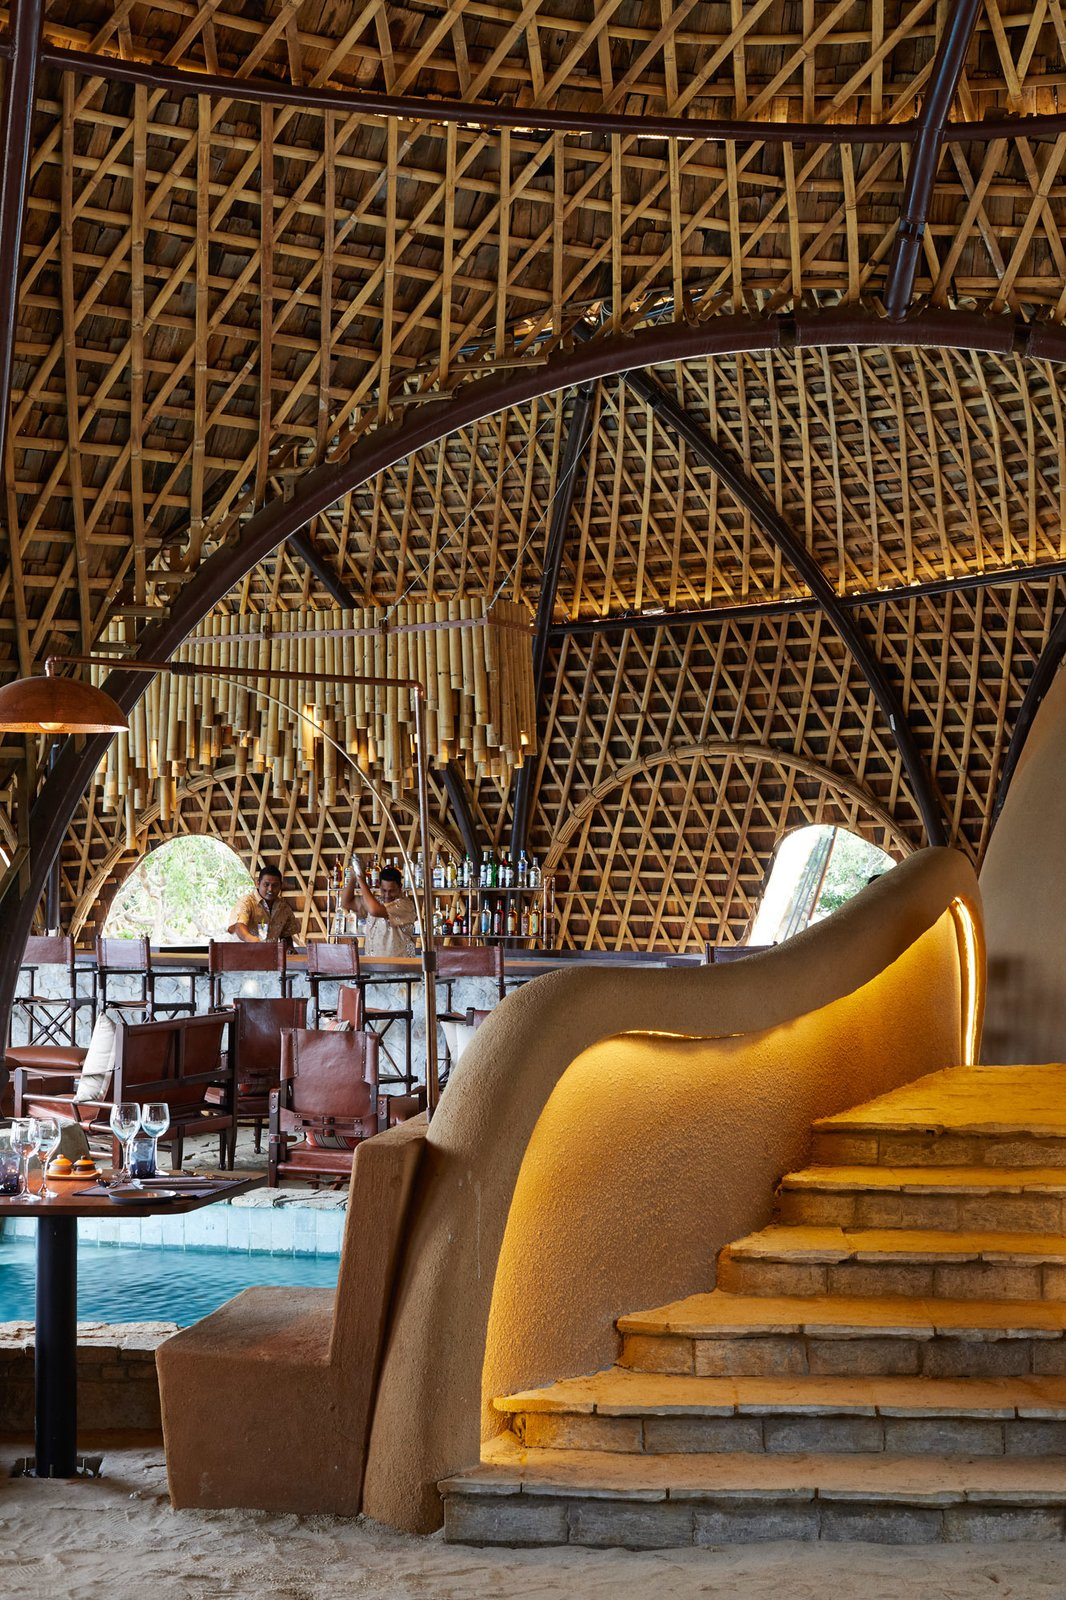 Staircase and Stone Tread For reservations, call +94 11 774 5730, email reservations@resplendentceylon.com or book online.  Wild Coast Tented Lodge from Stay in a Cocoon-Like Tent at a Safari Resort in Sri Lanka